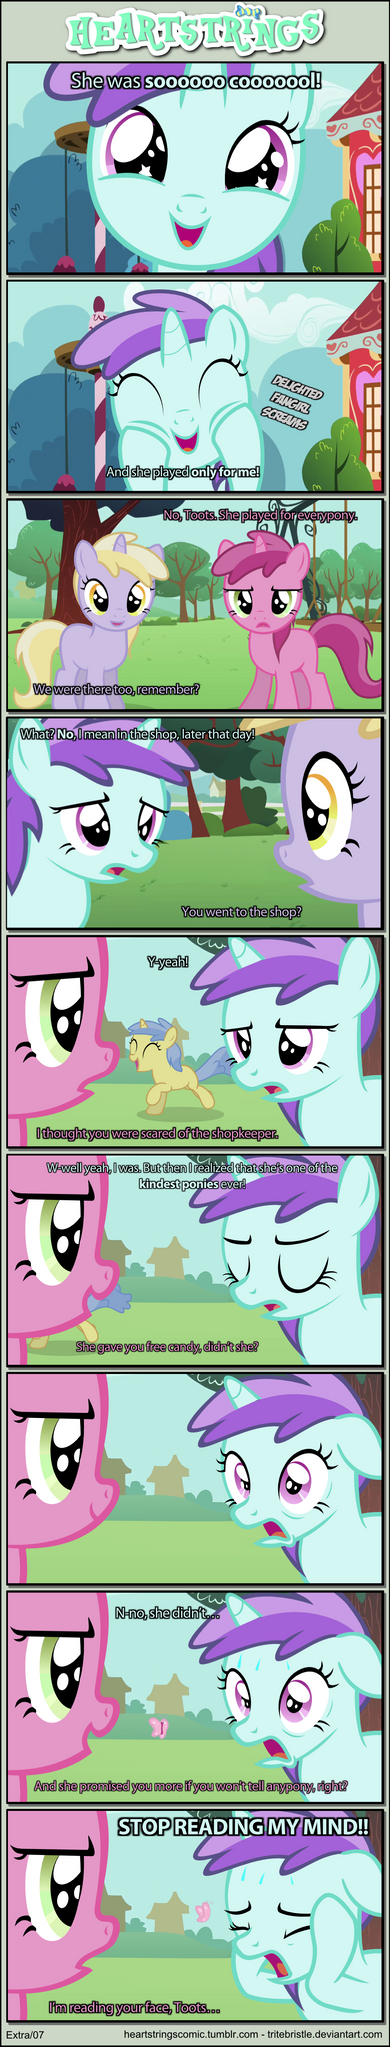 Heartstrings Extra p7 - The next day... by TriteBristle